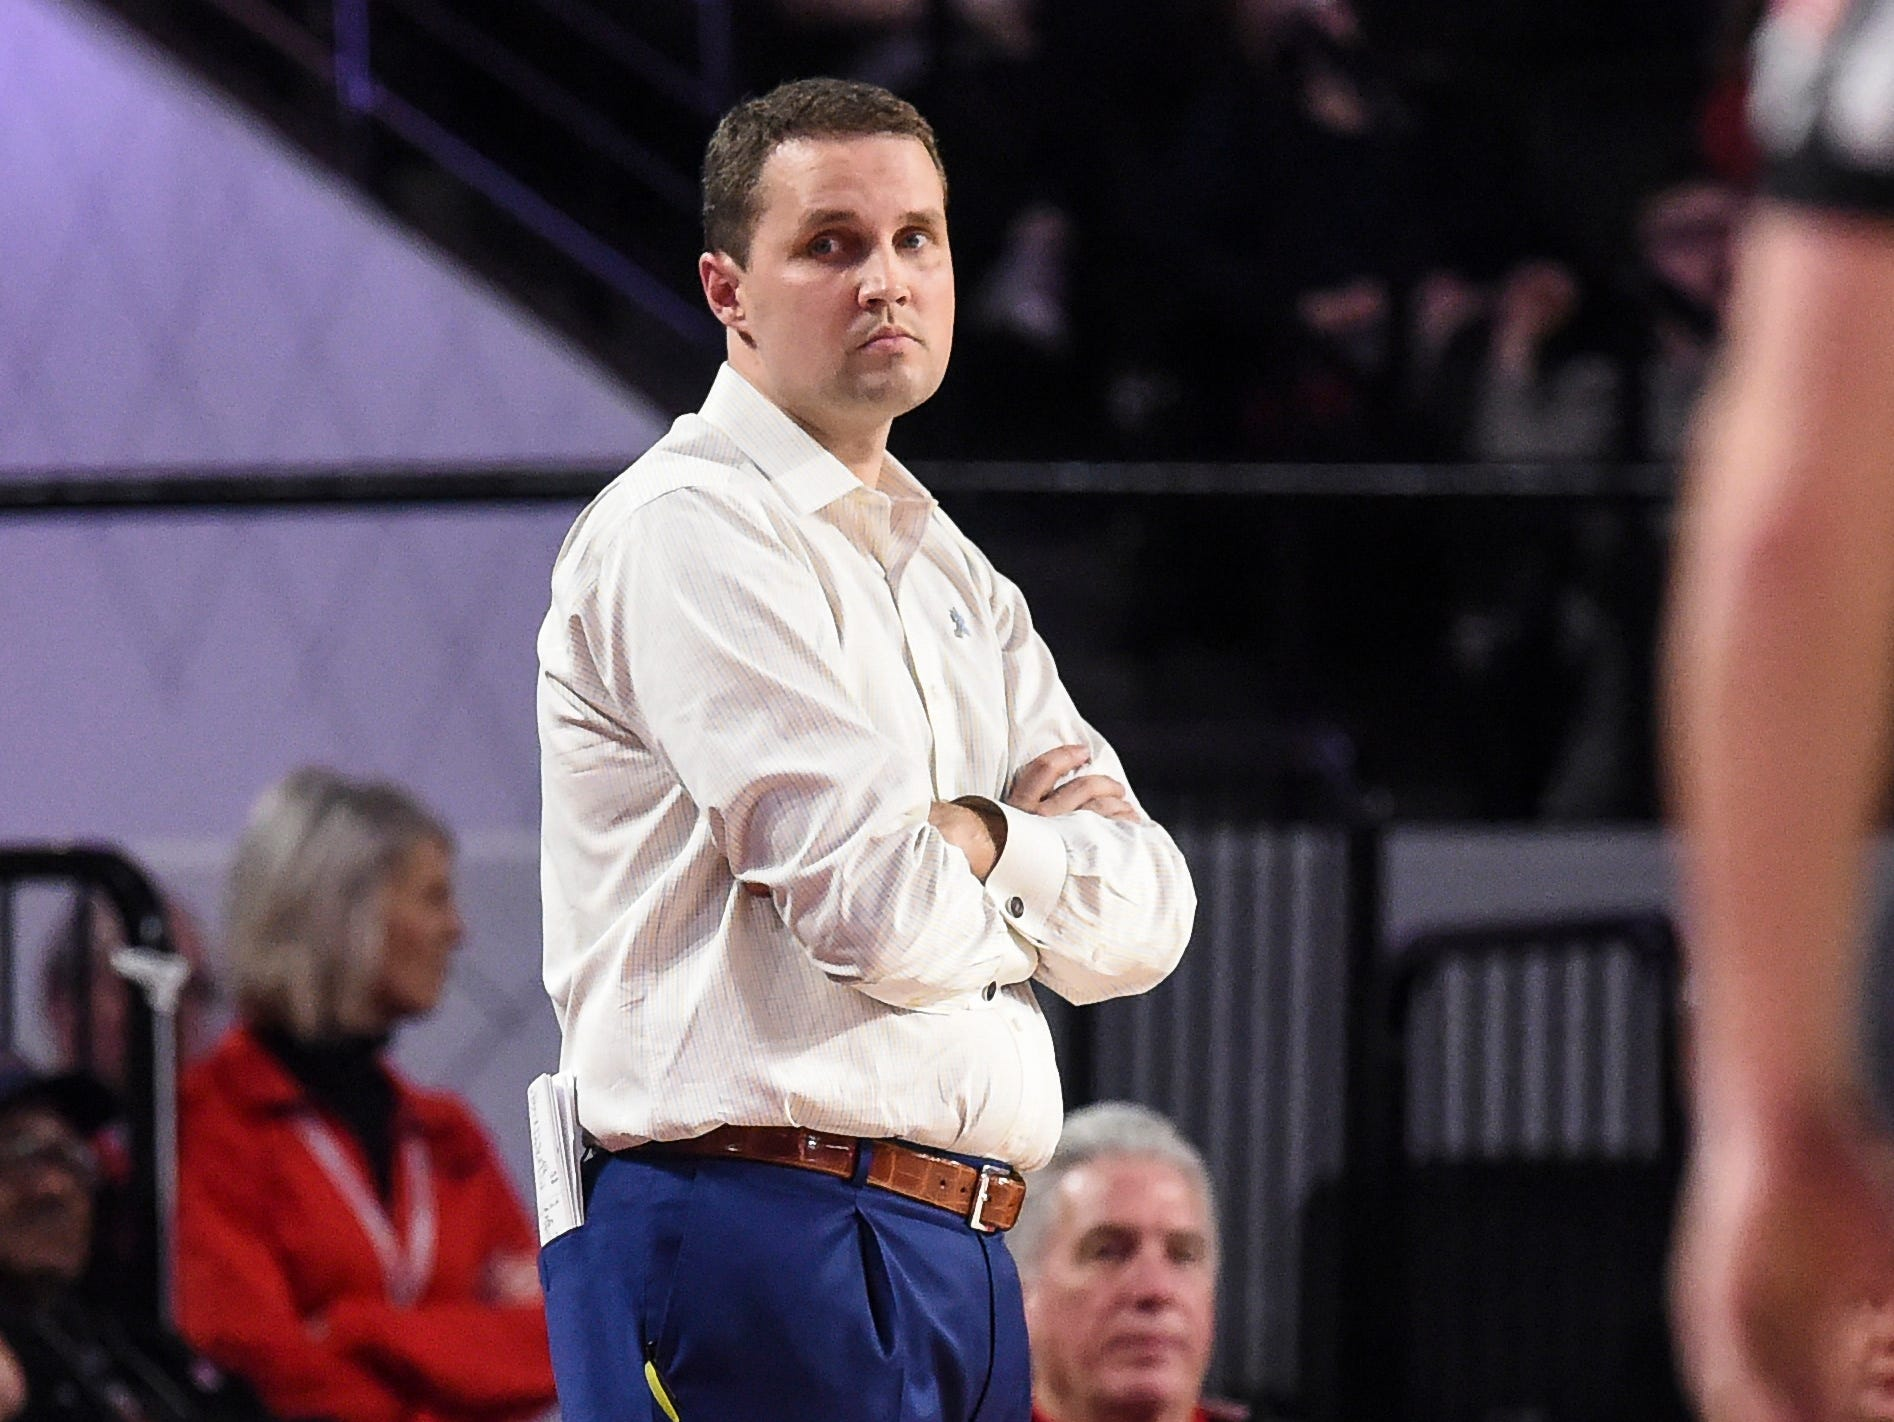 Feb 16, 2019; Athens, GA, USA; LSU Tigers head coach Will Wade looks on from the sideline during the second half against the Georgia Bulldogs at Stegeman Coliseum. Mandatory Credit: Dale Zanine-USA TODAY Sports